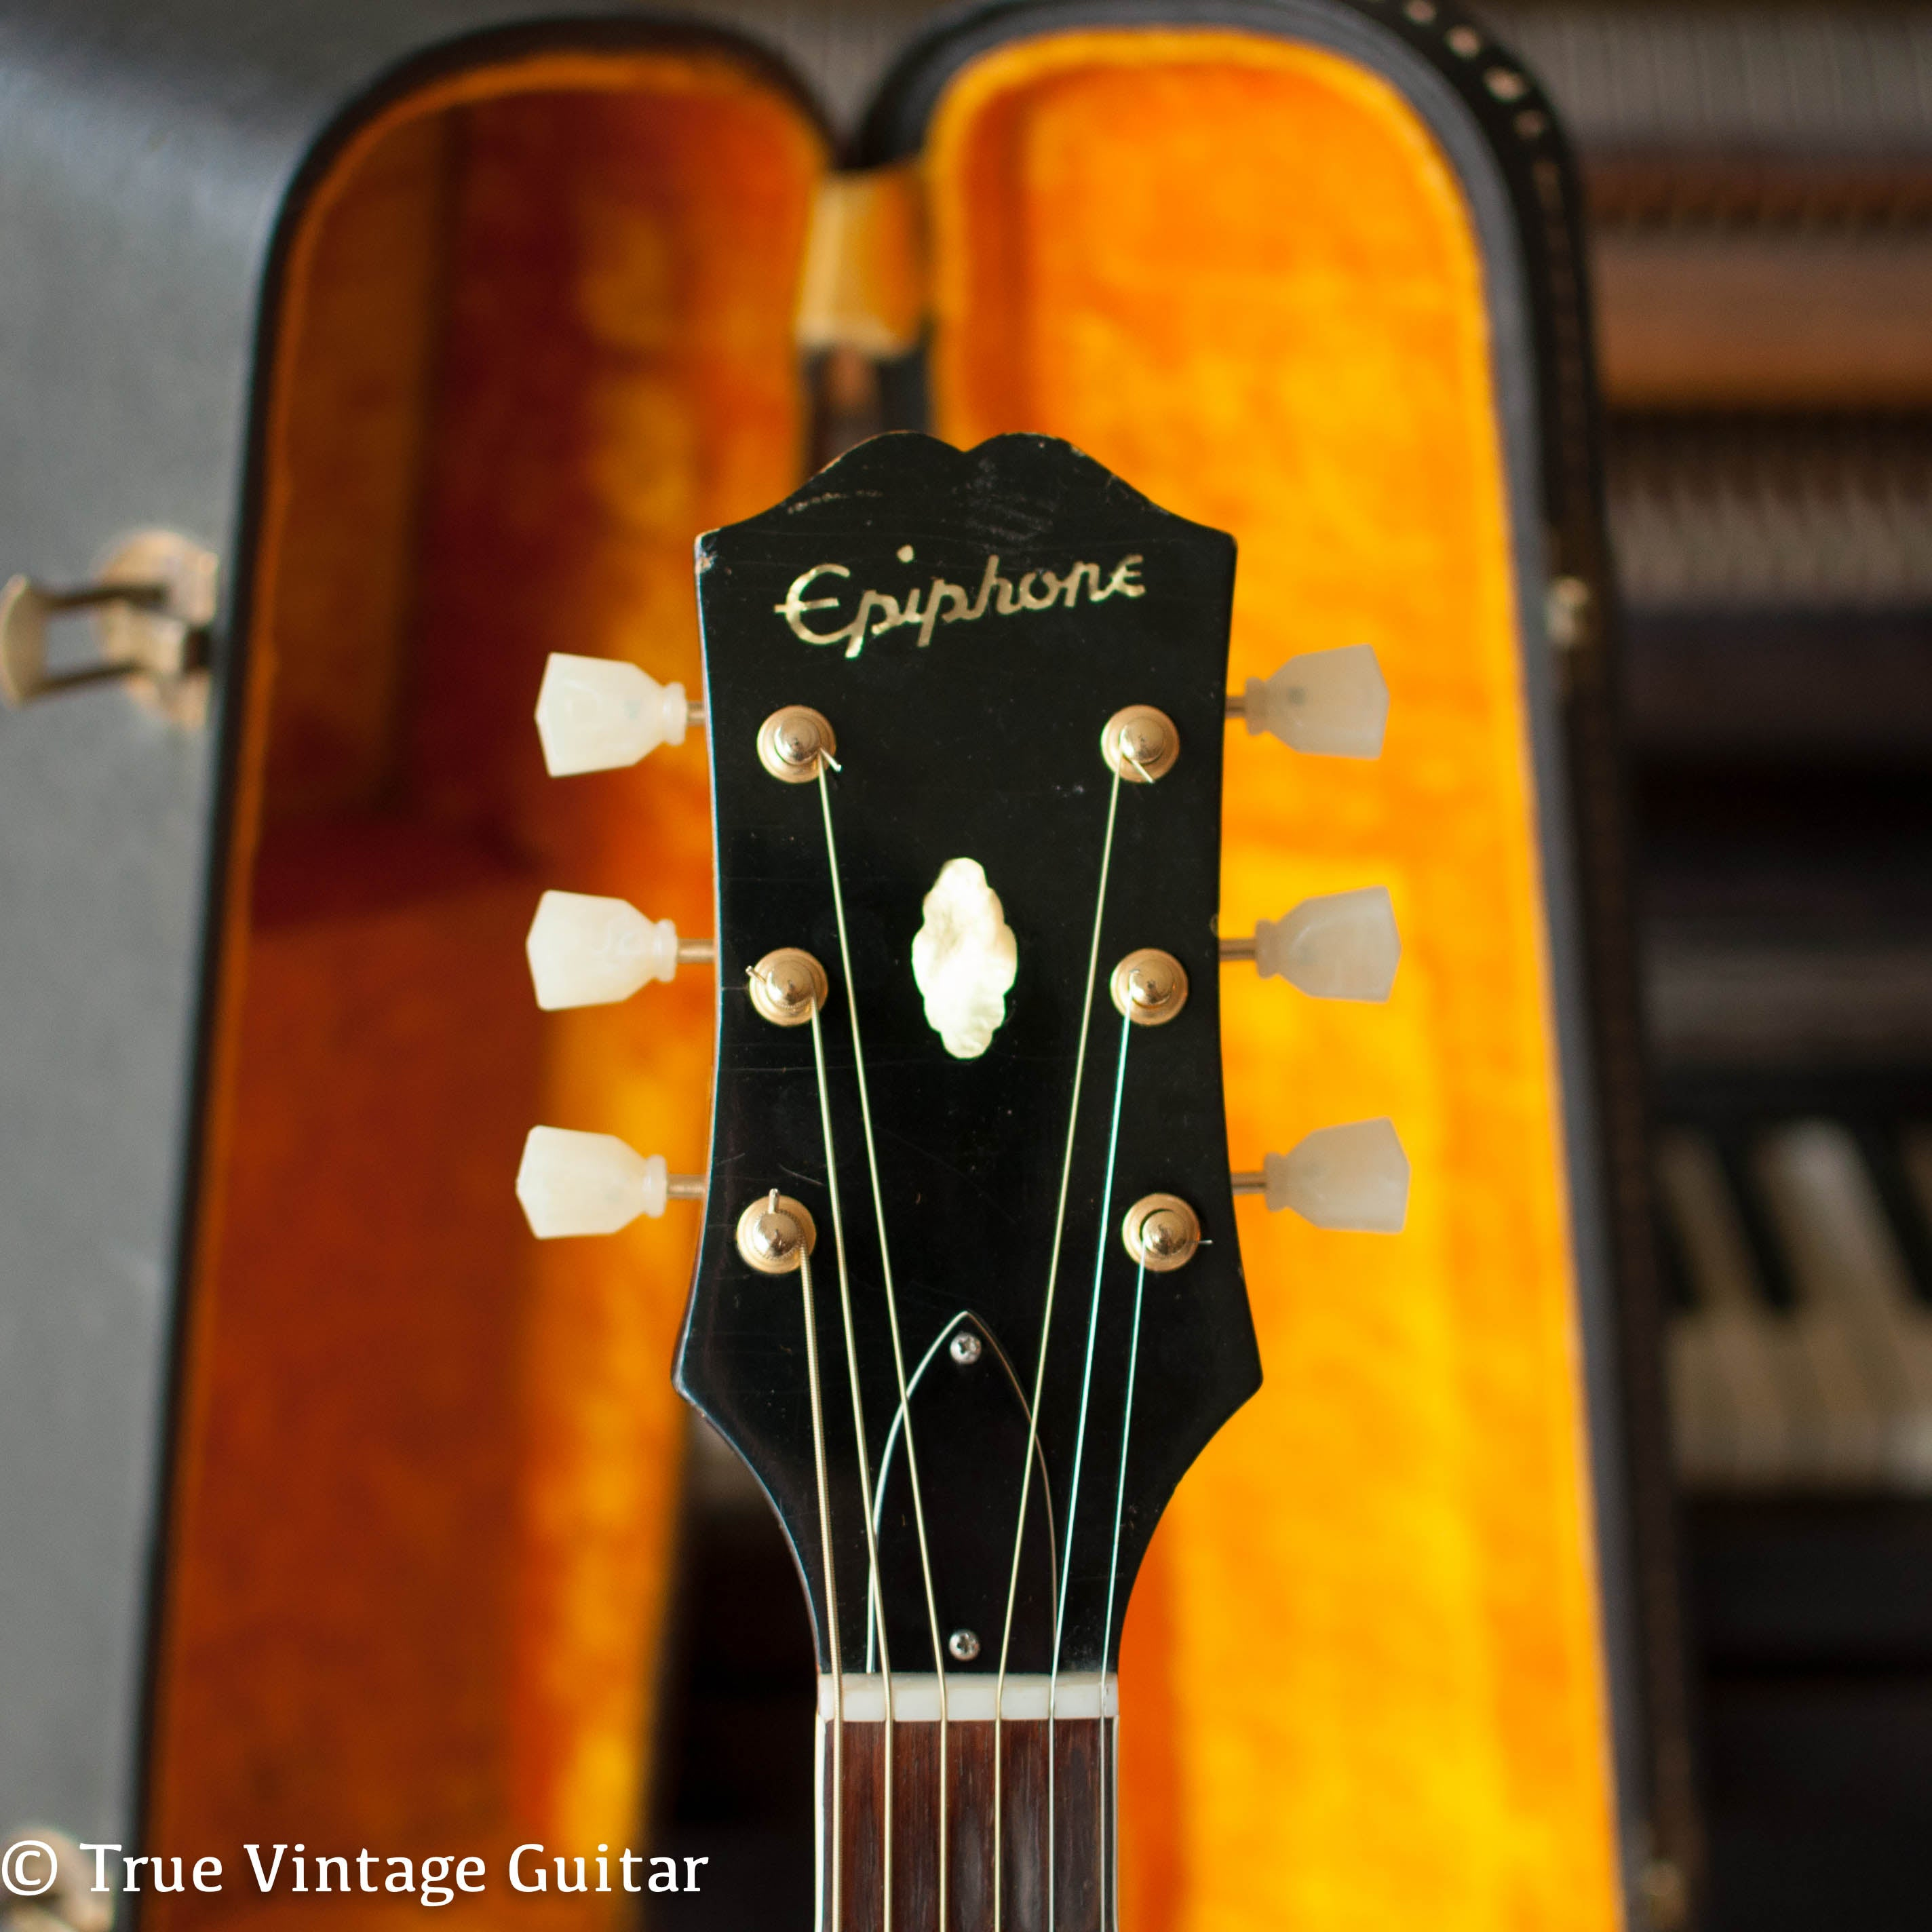 Short headstock, Vintage 1963 Epiphone FT-110 Frontier acoustic guitar, engraved cactus lariat pickguard